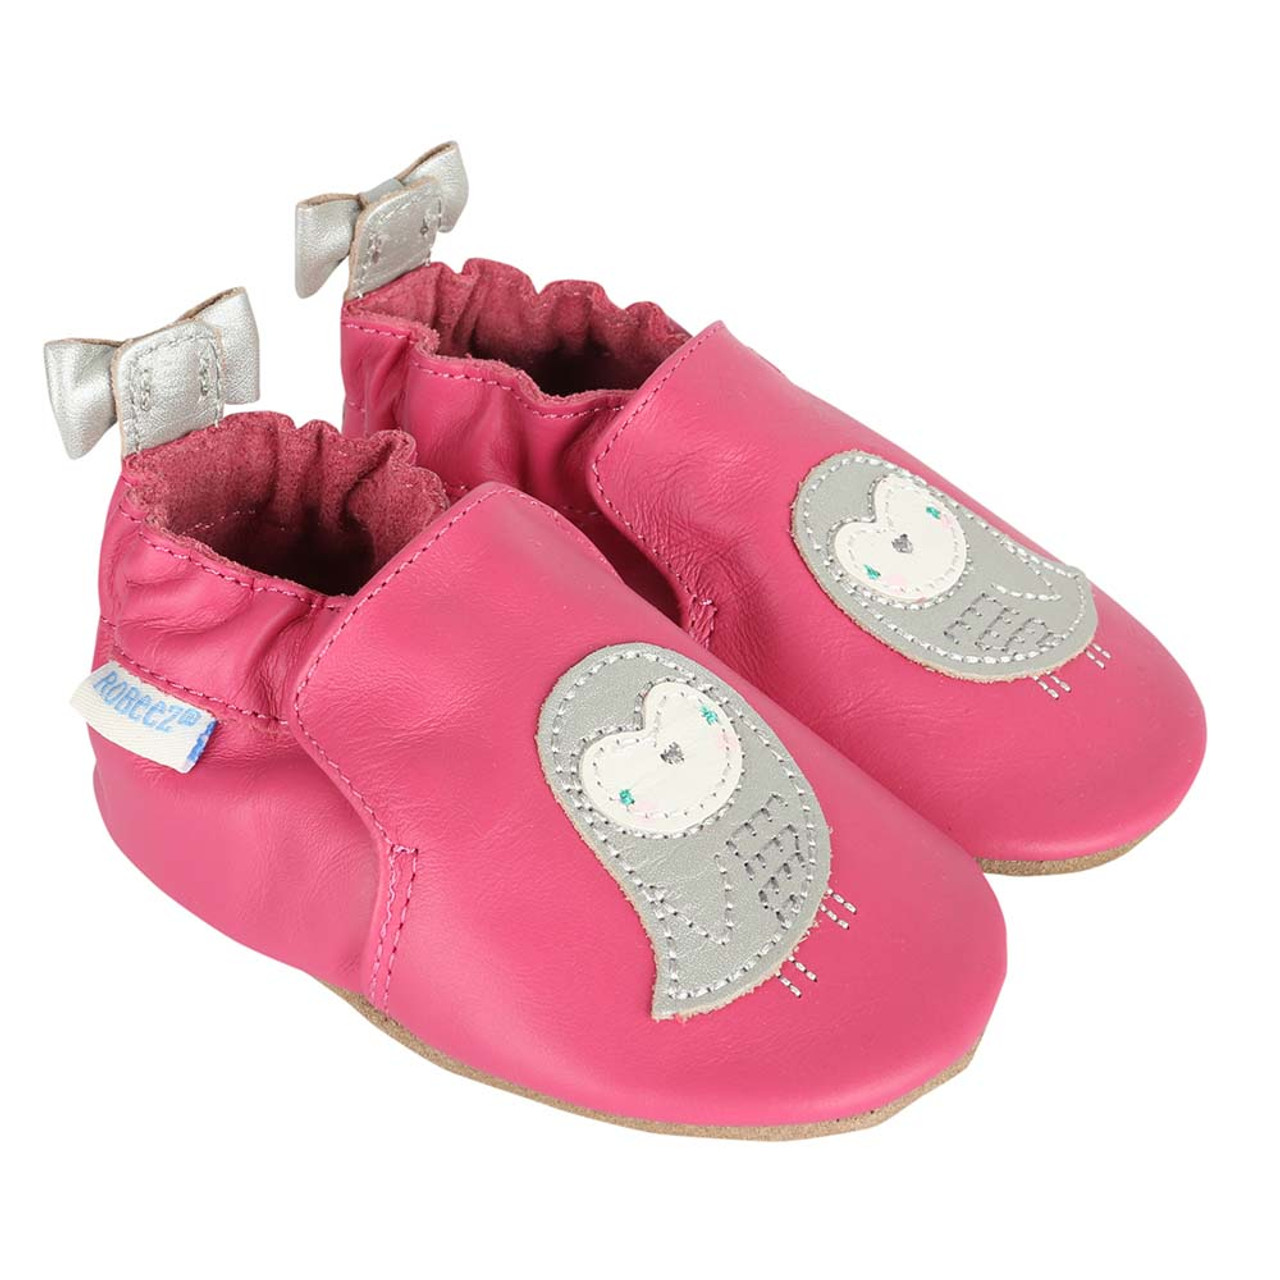 Baby Shoes Bird Buddies Soft Soles Girls Ages 0 4 Years Robeez